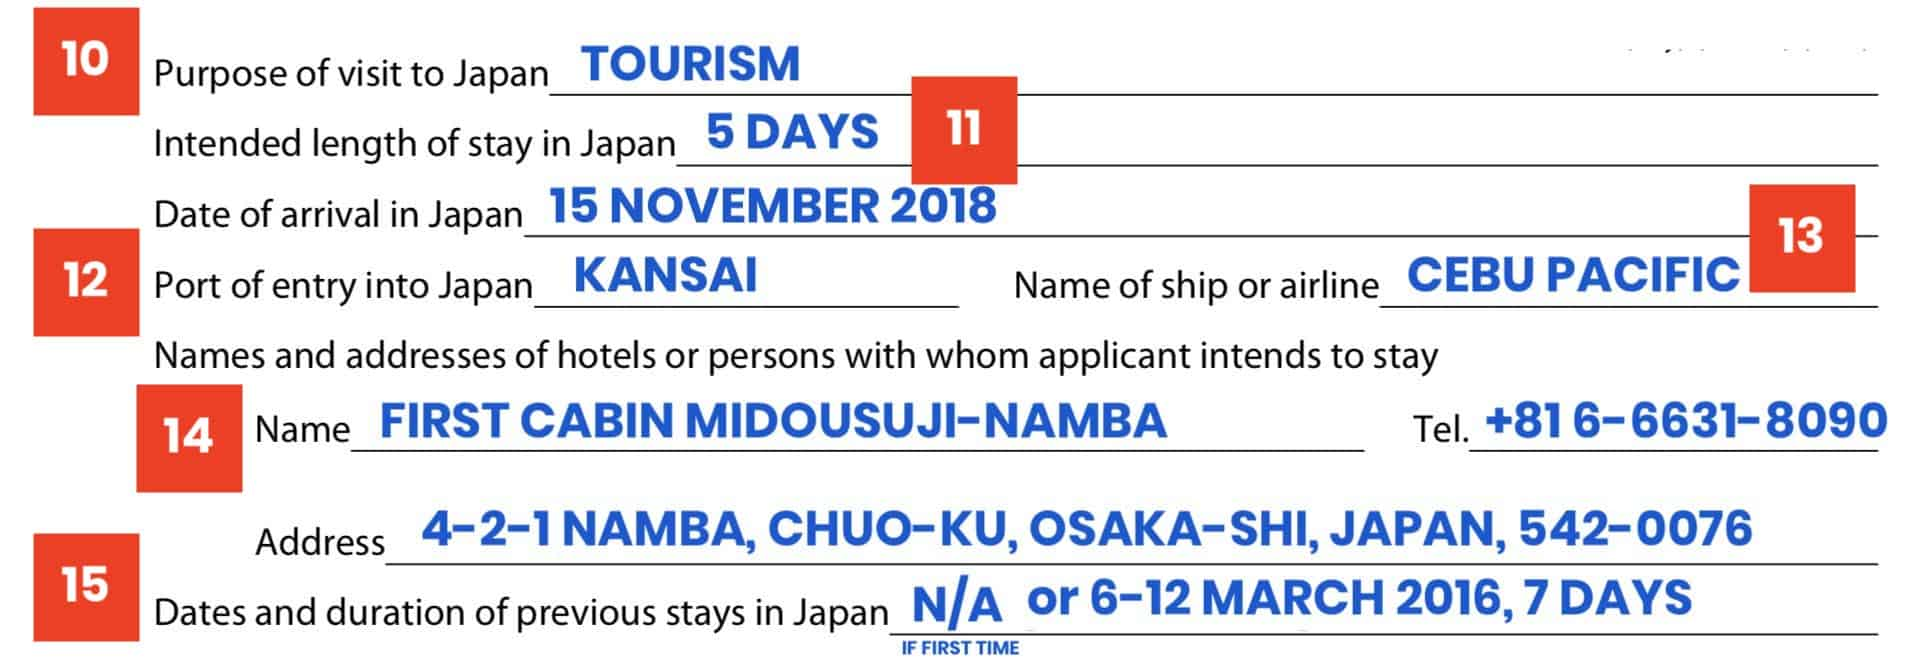 JAPAN VISA APPLICATION FORM: Sample + How to Fill it Out